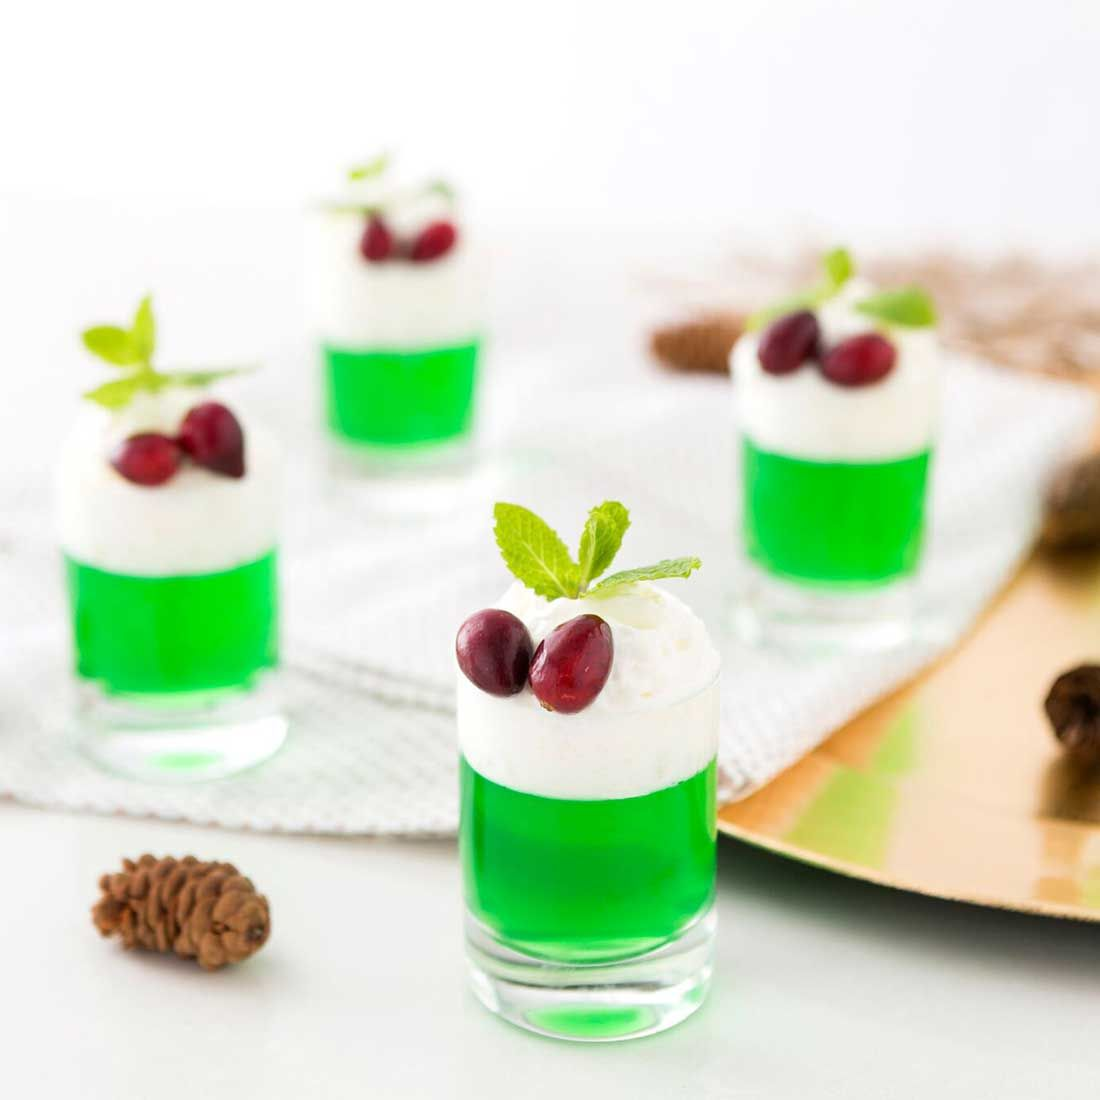 Celebrate The Holidays With Festive Mistletoe Jello Shots